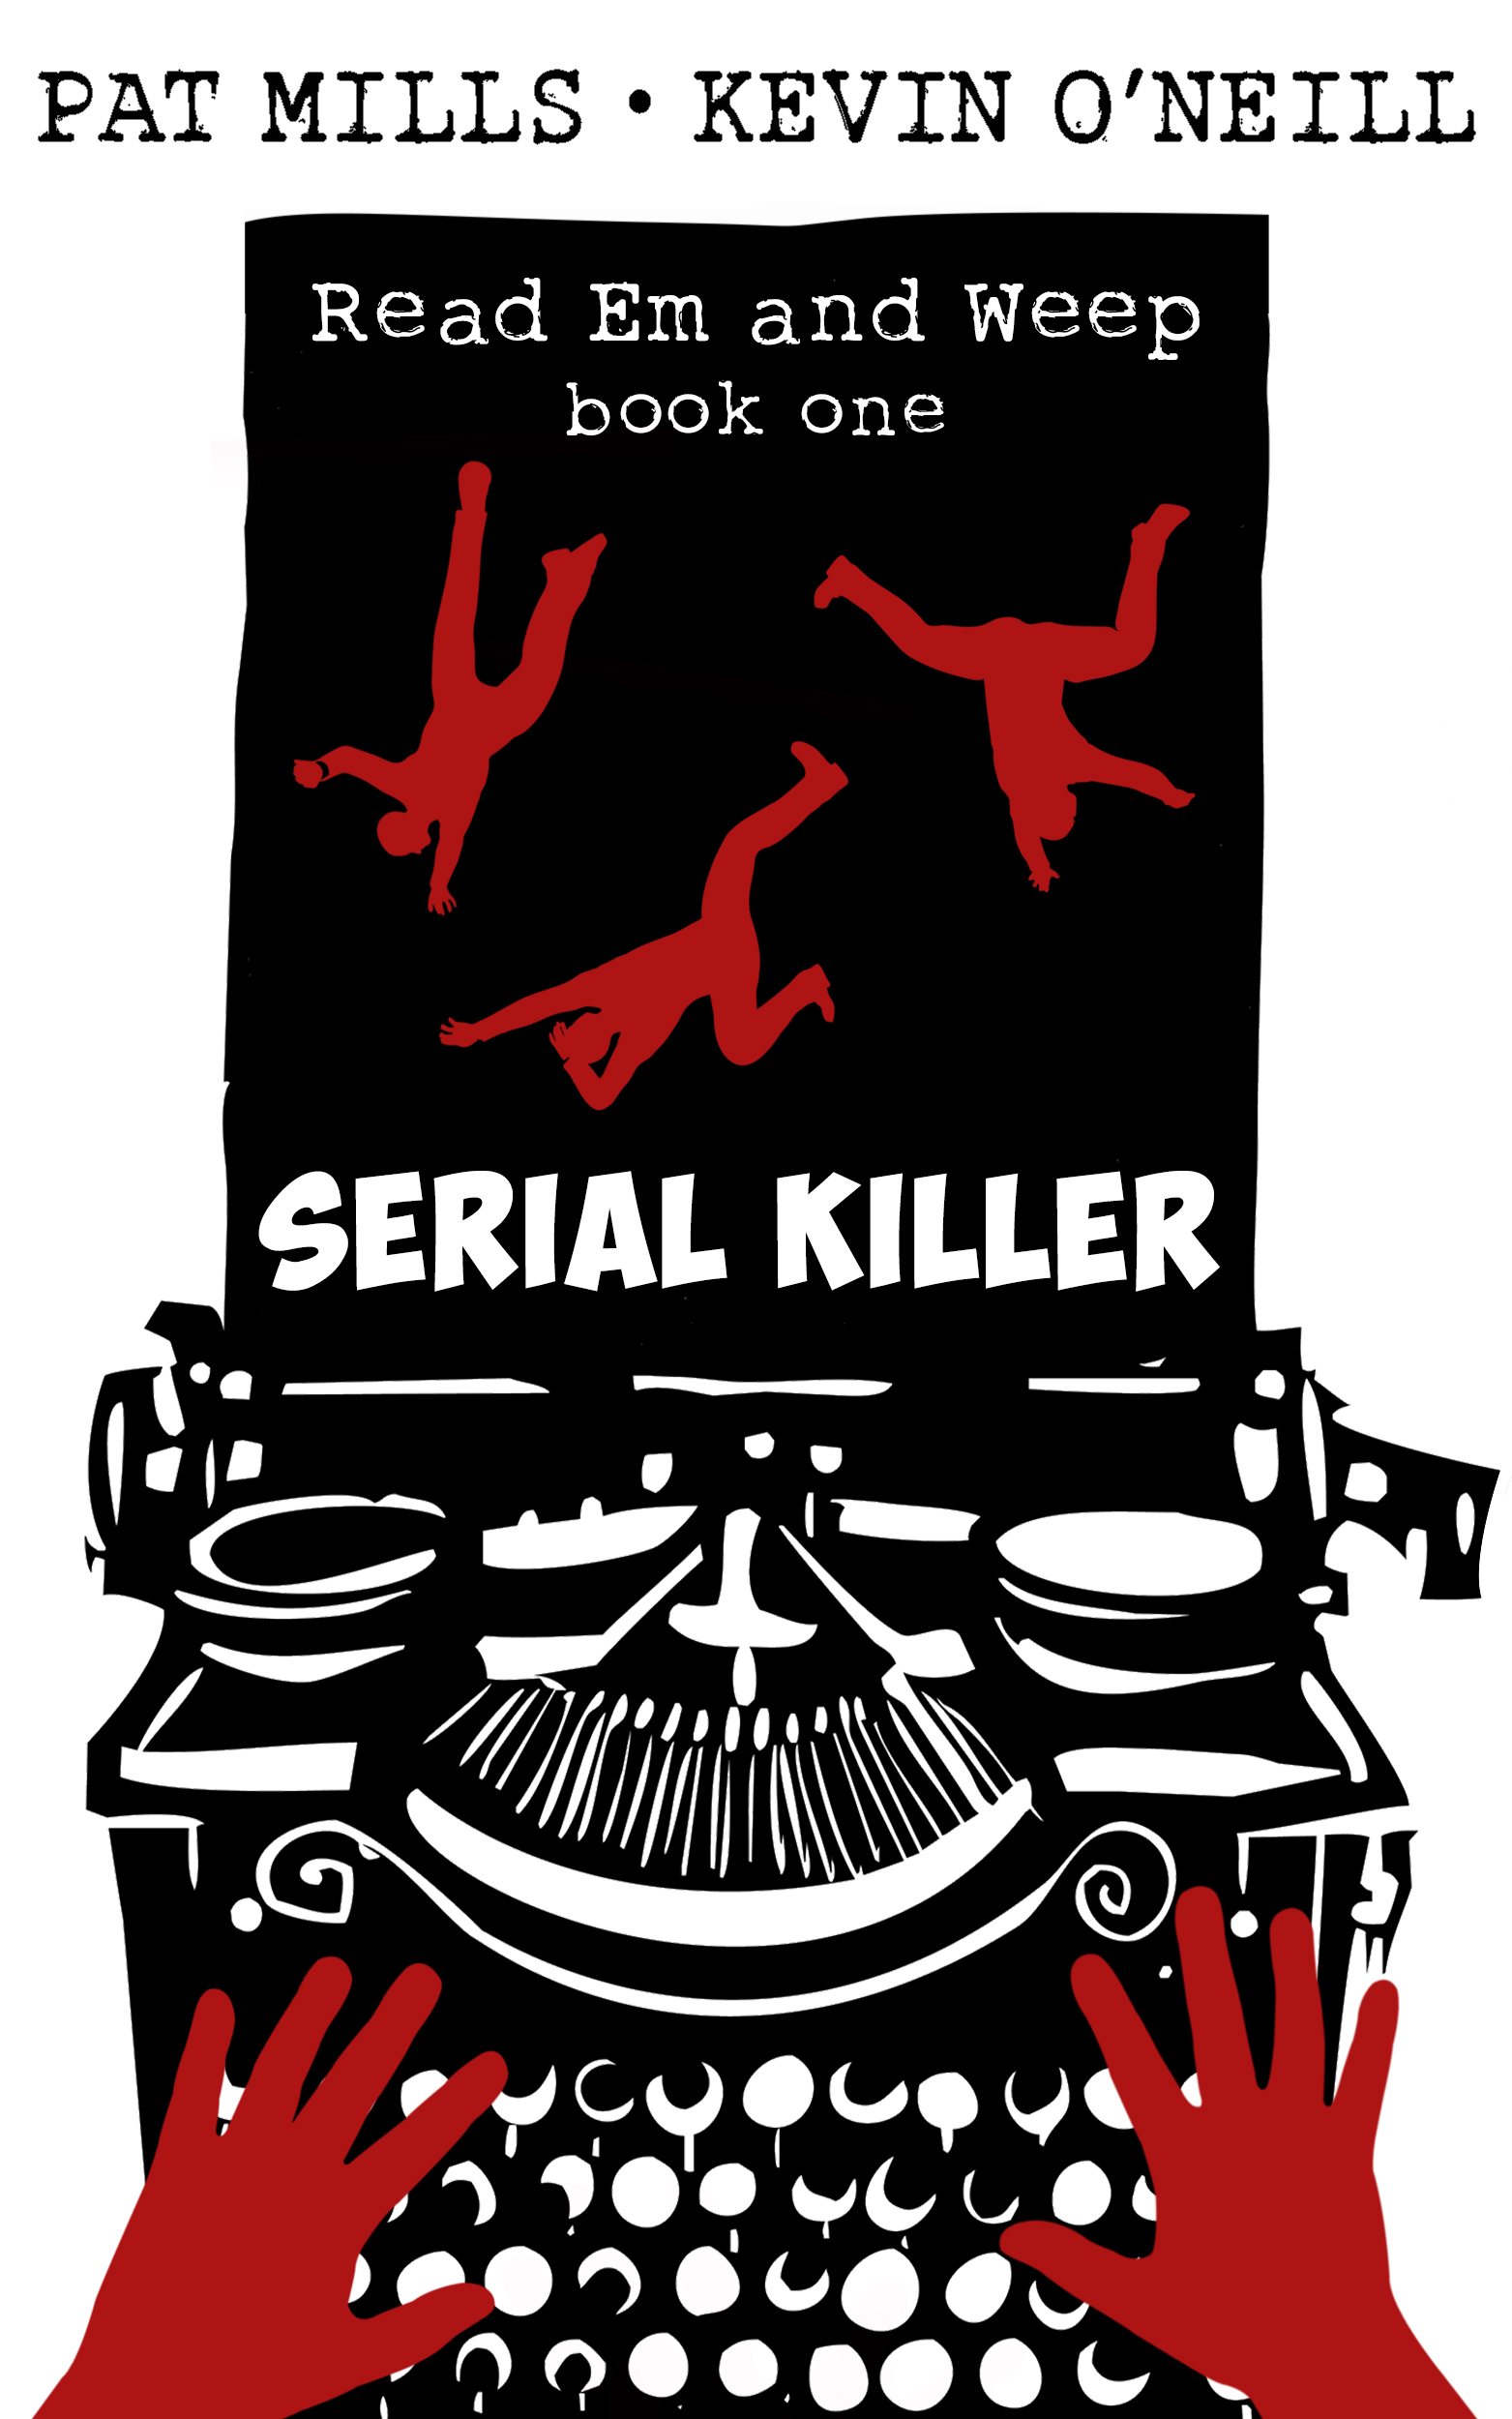 Read Em and Weep: Serial Killer, by Pat Mills and Kevin O'Neill